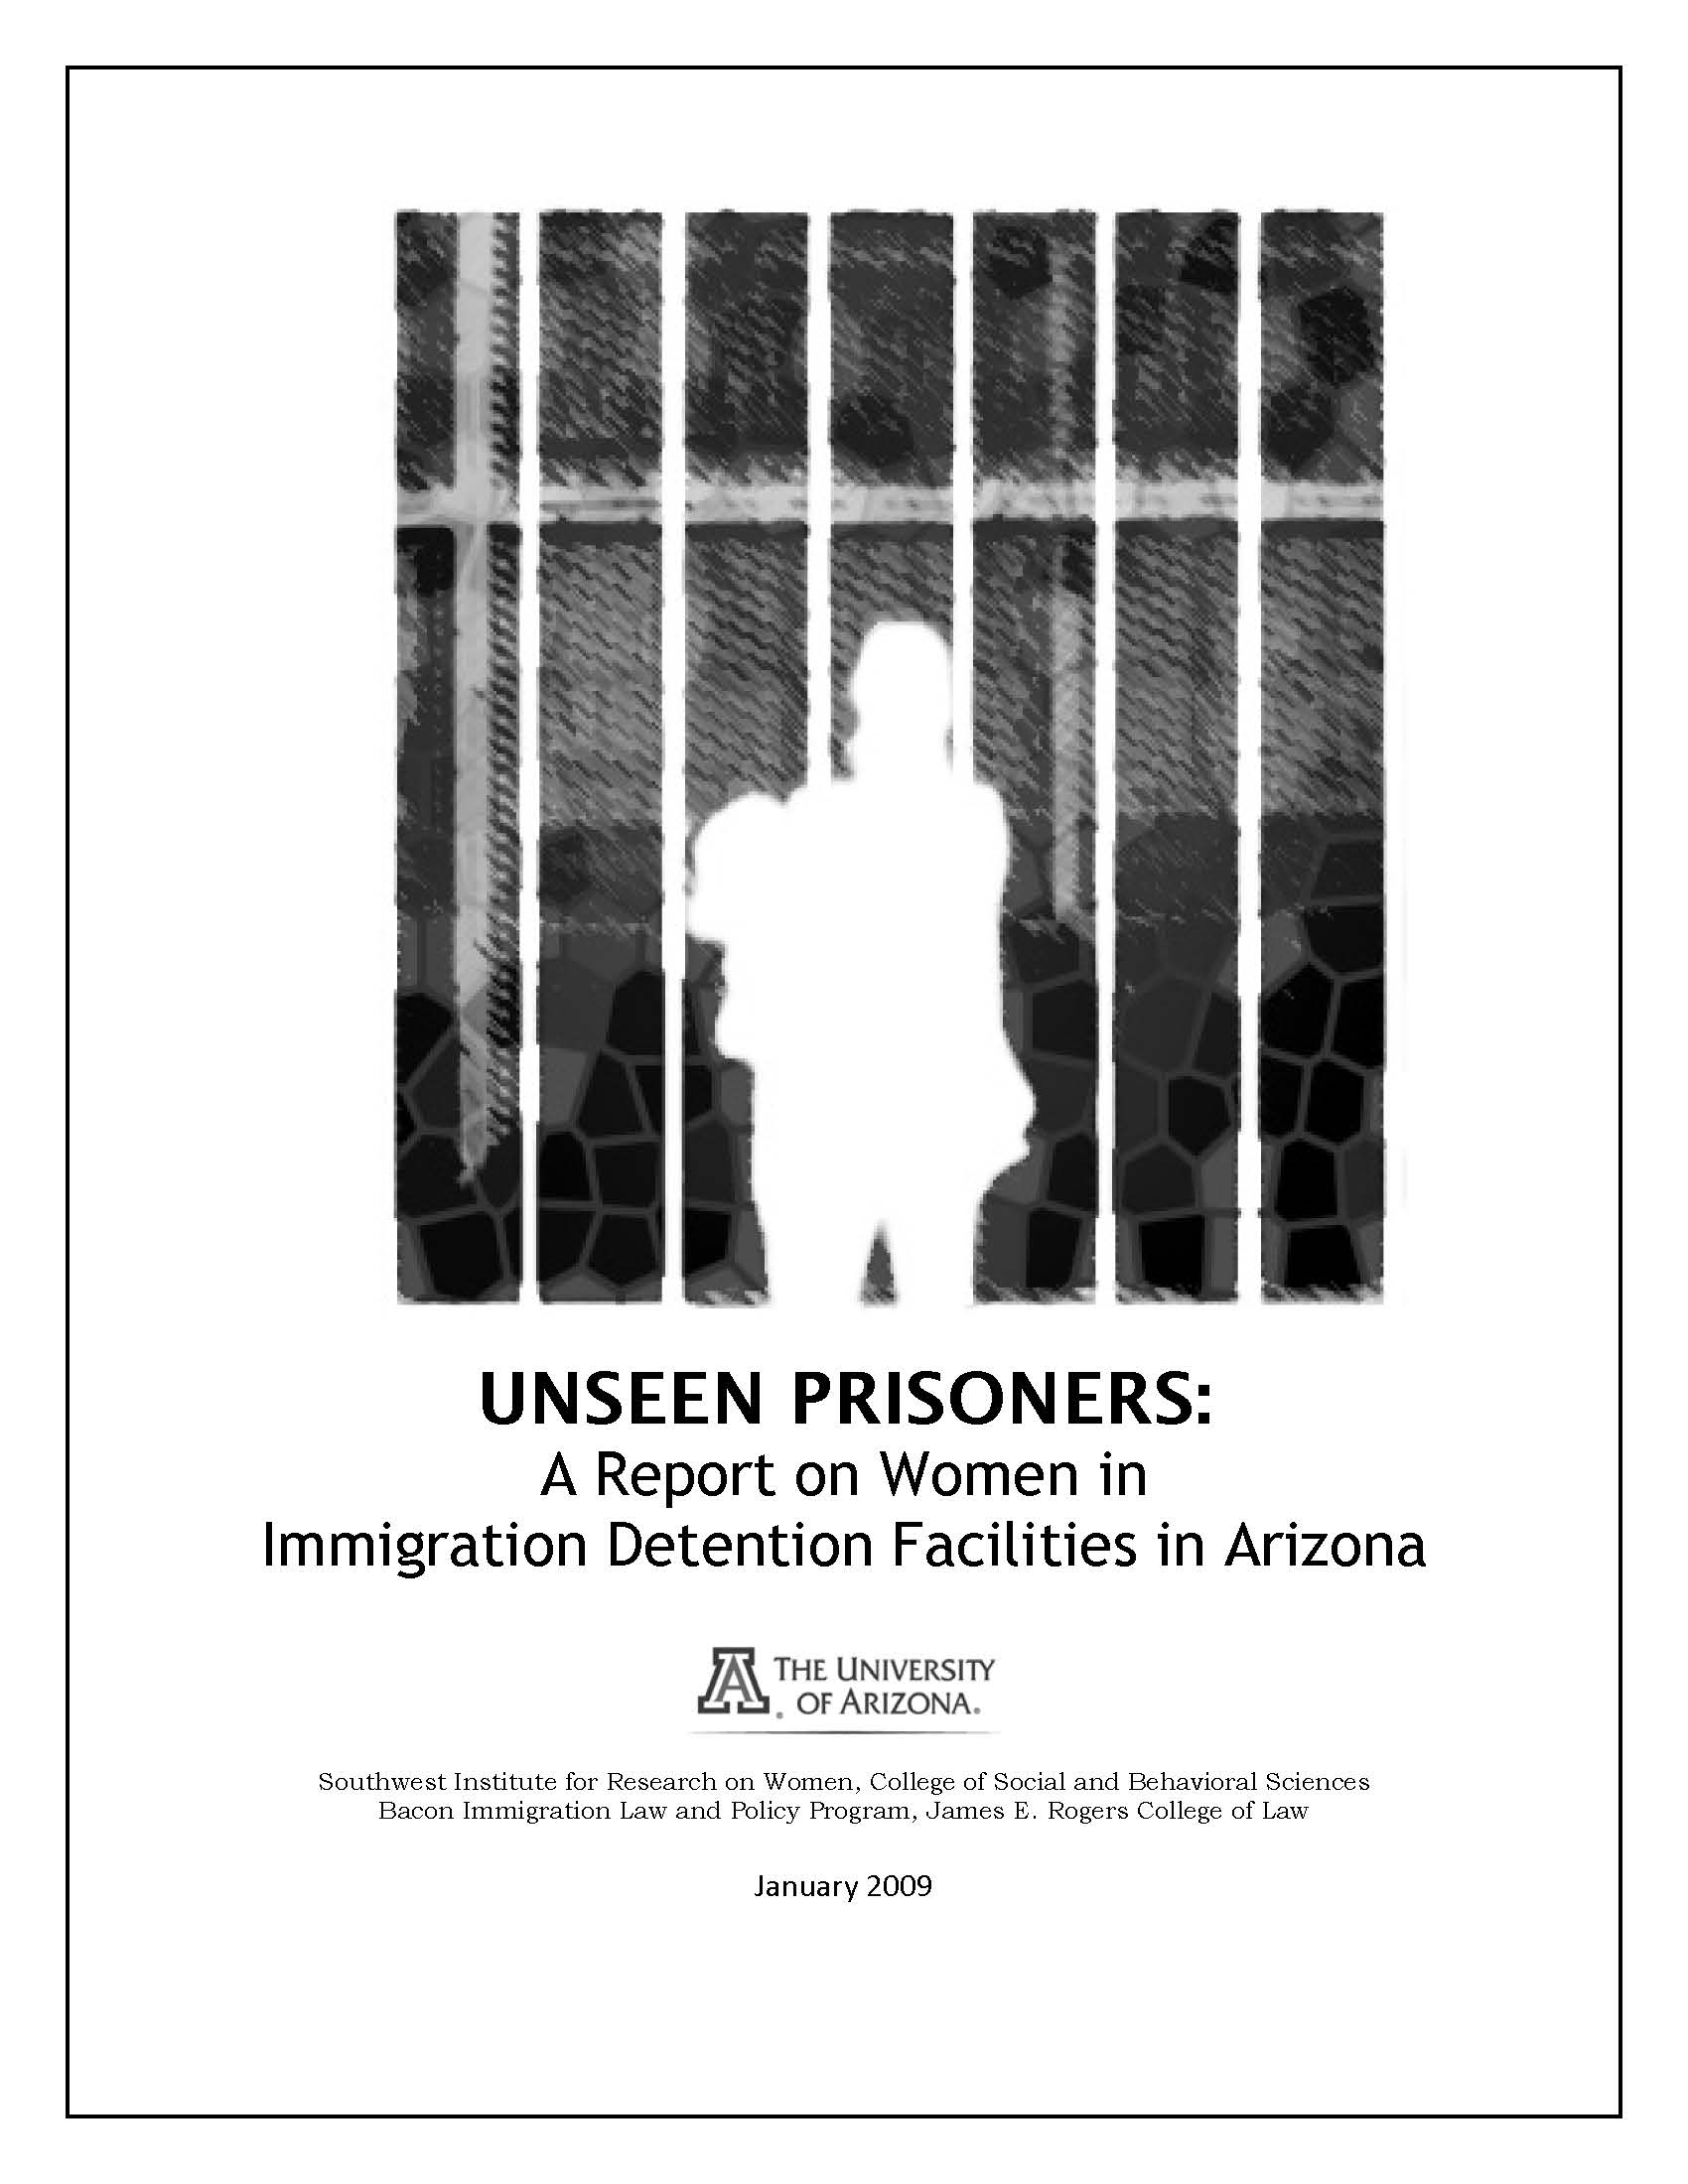 Cover of Unseen Prisoners report